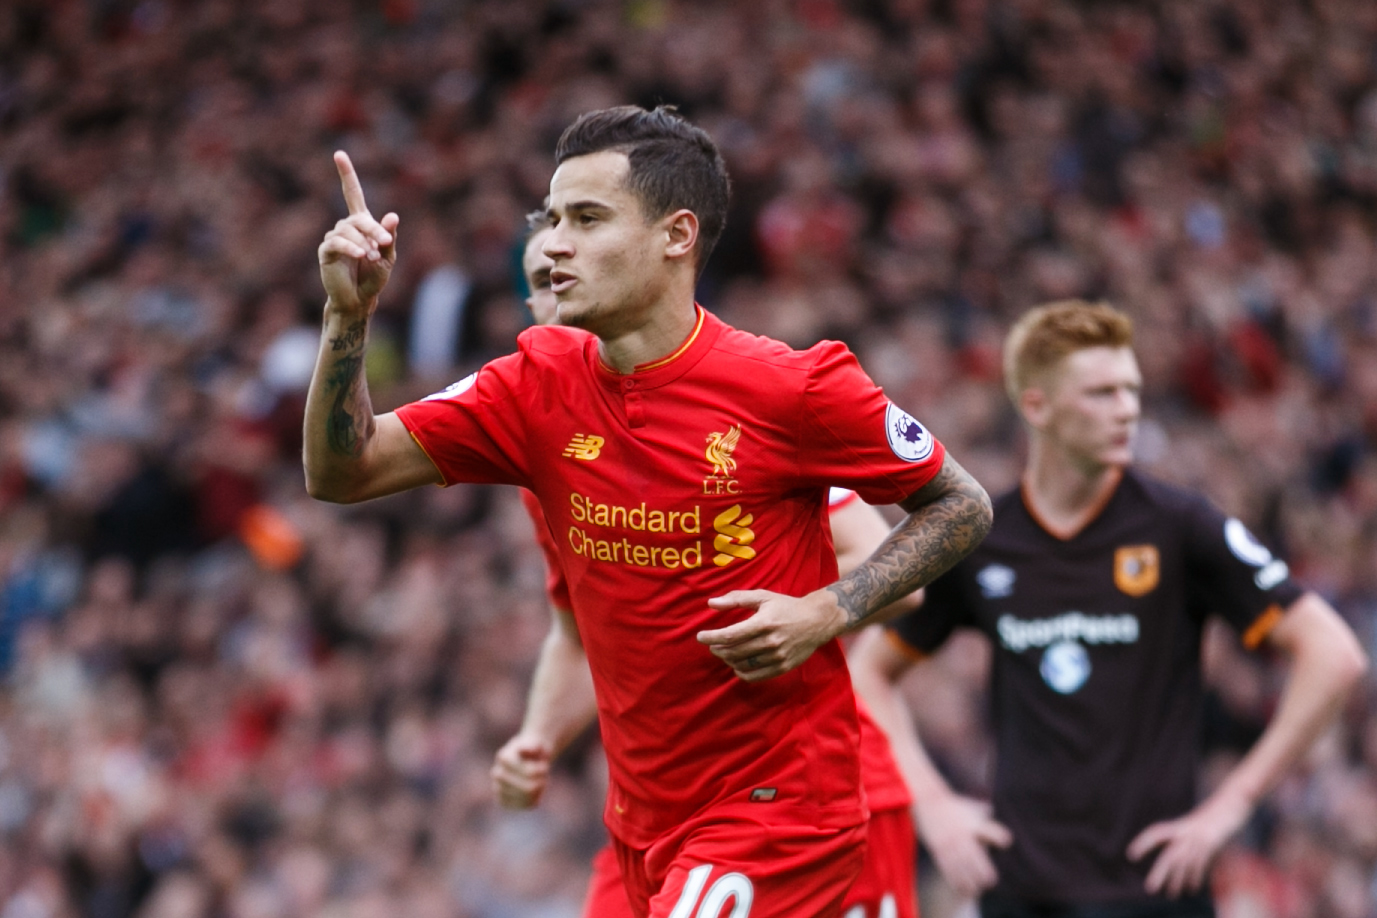 LIVERPOOL, ENGLAND - SEPTEMBER 24: Philippe Coutinho of Liverpool celebrates after scoring a goal to make it 4-1 during the Premier League match between Liverpool and Hull City at Anfield on September 24, 2016 in Liverpool, England. (Photo by Robbie Jay Barratt - AMA/Getty Images)